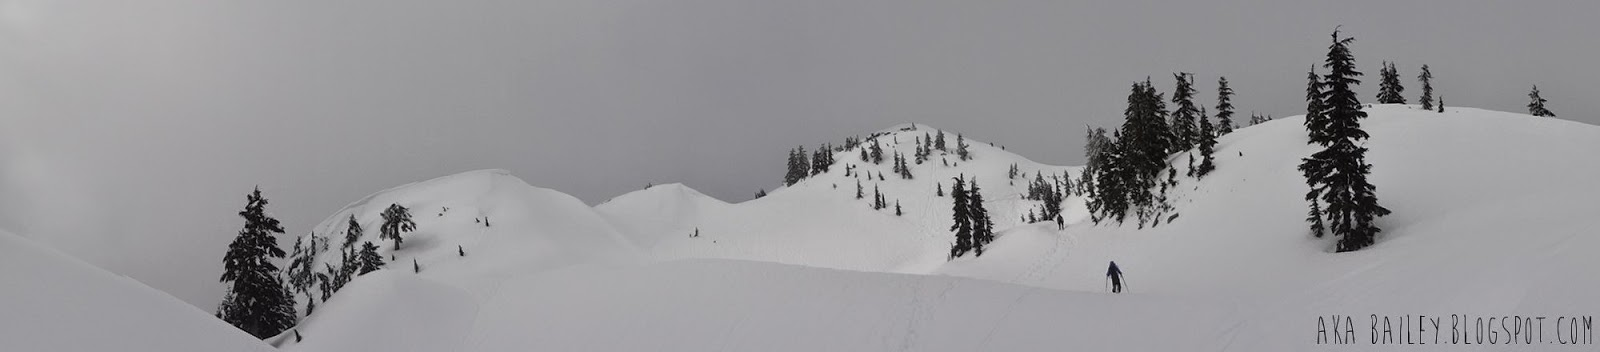 Panorama view of first pump on Mt. Seymour in North Vancouver